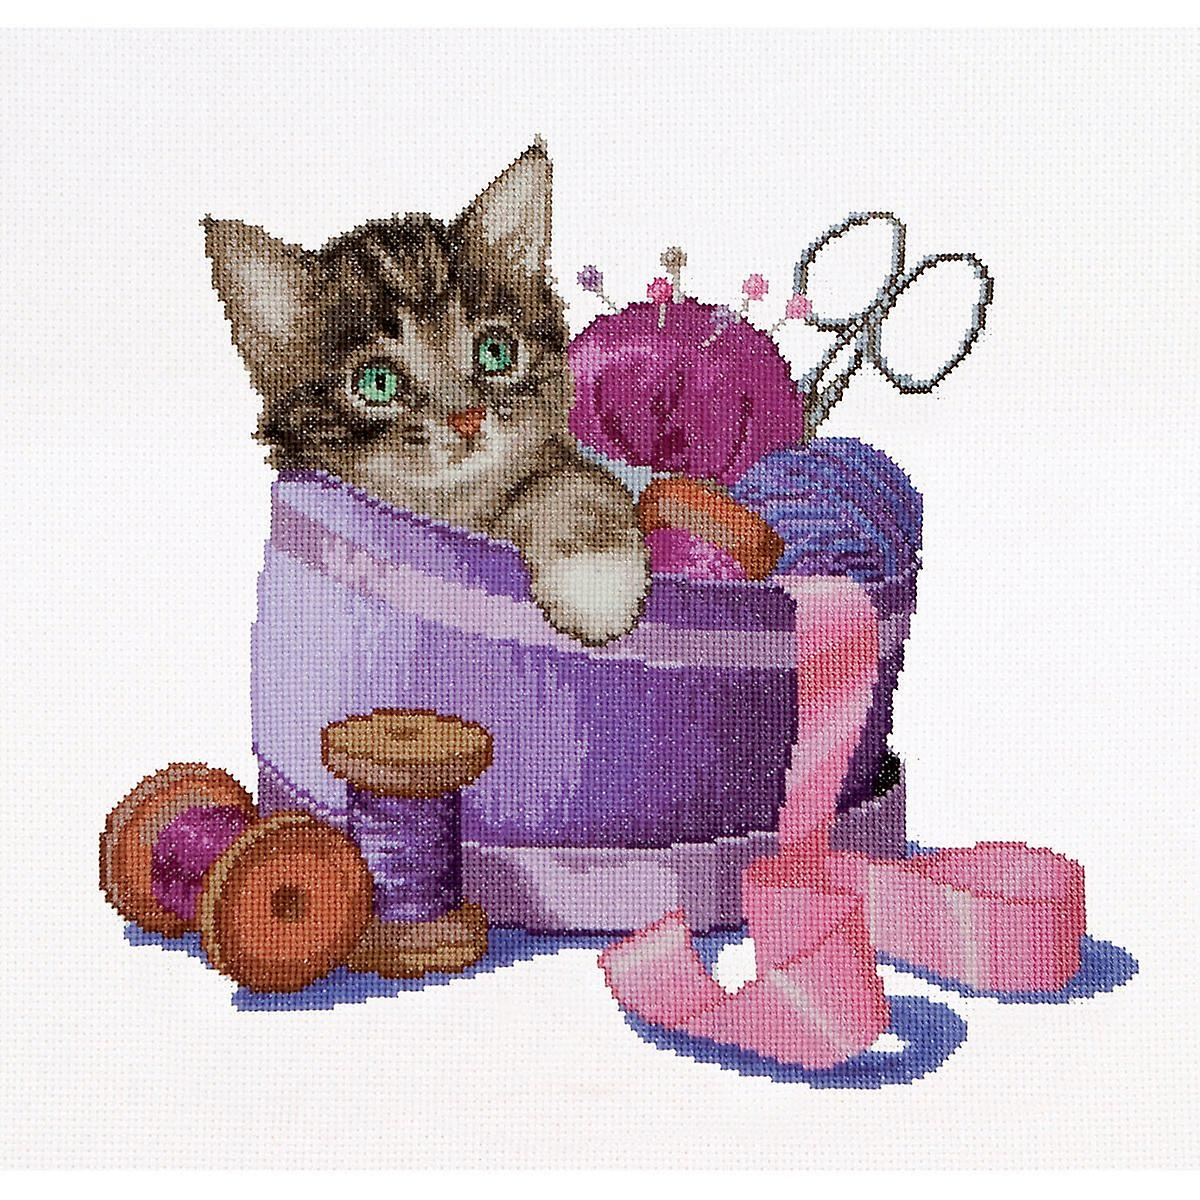 Sewing Basket Kitten On Aida Counted Cross Stitch Kit-12.25& 034;X11.75& 034; 16 Count